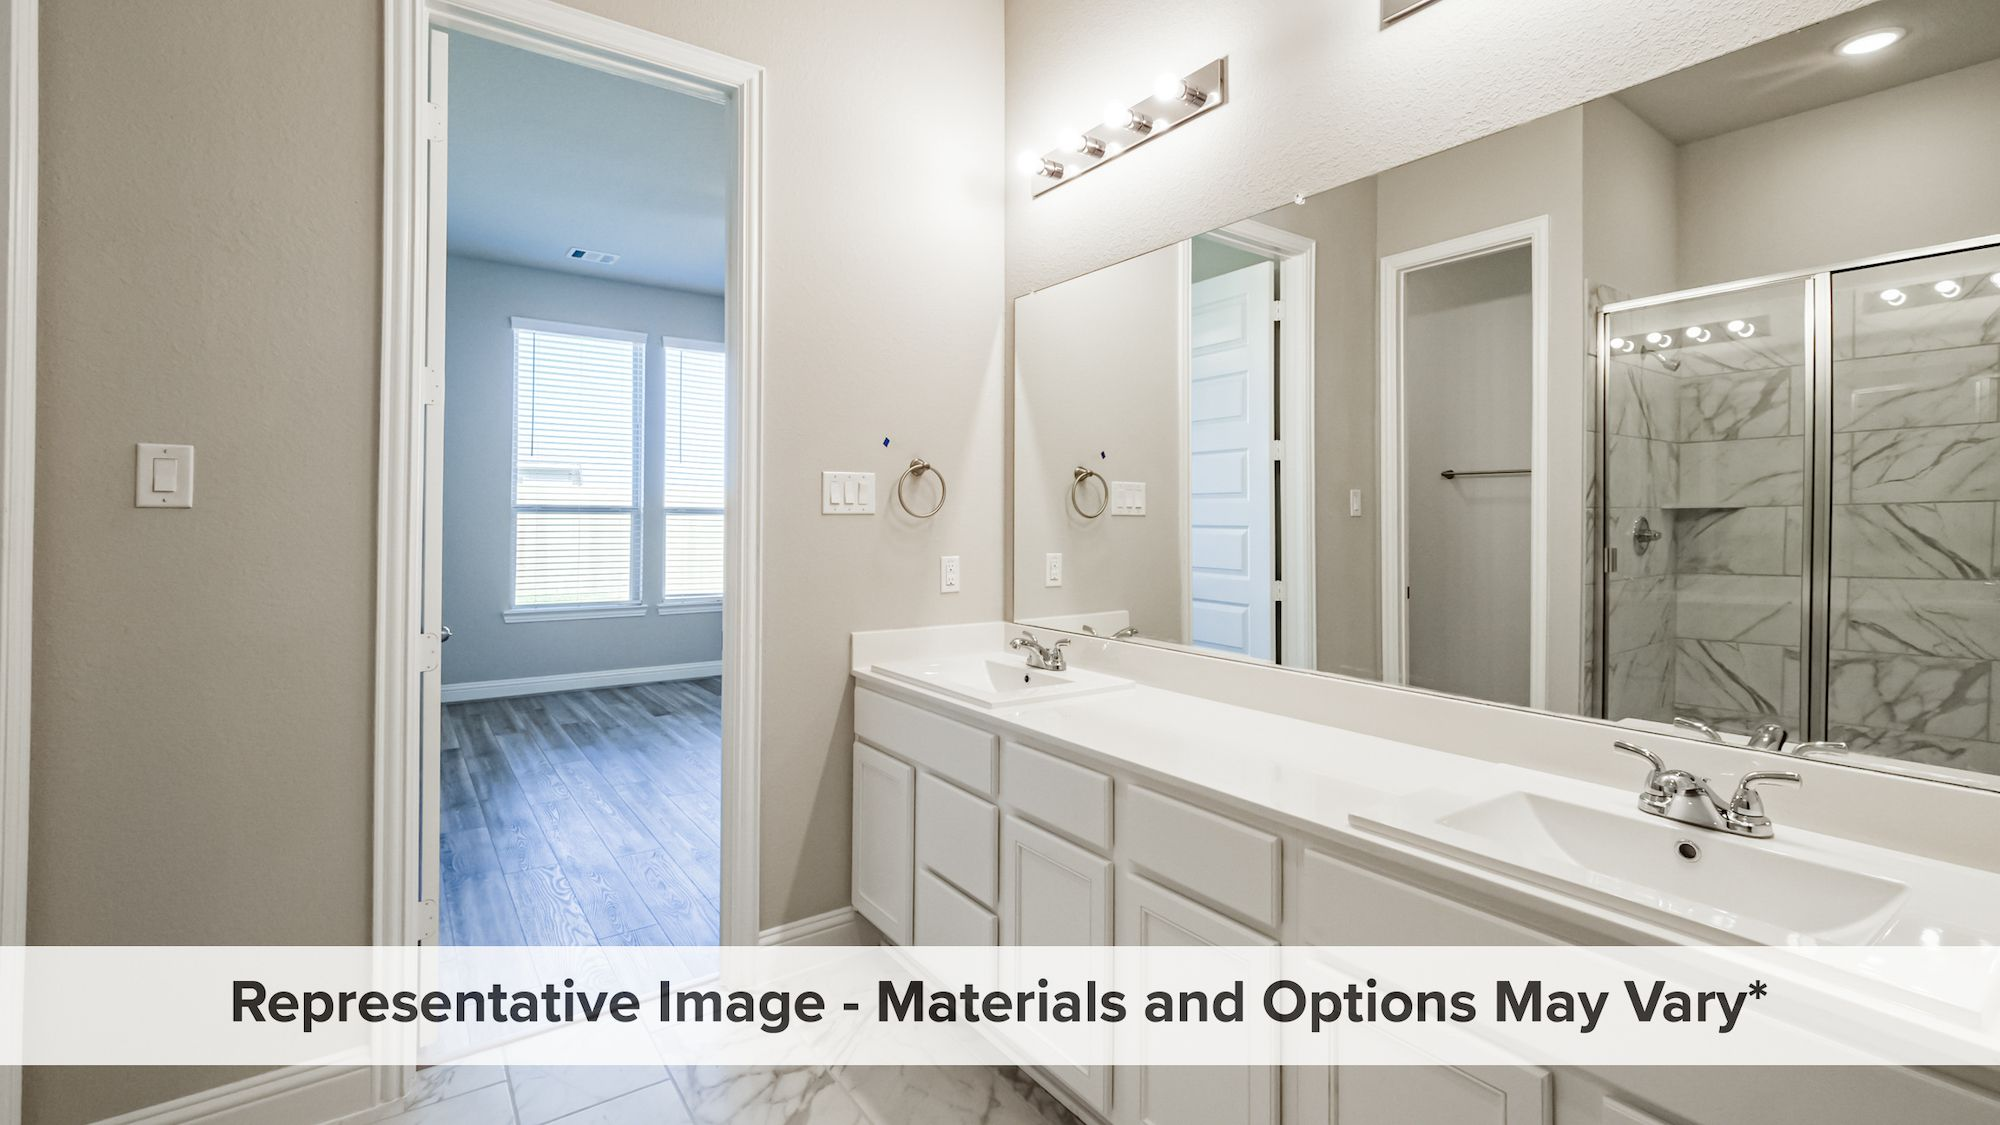 Bathroom featured in the Hemlock By HistoryMaker Homes    in Houston, TX